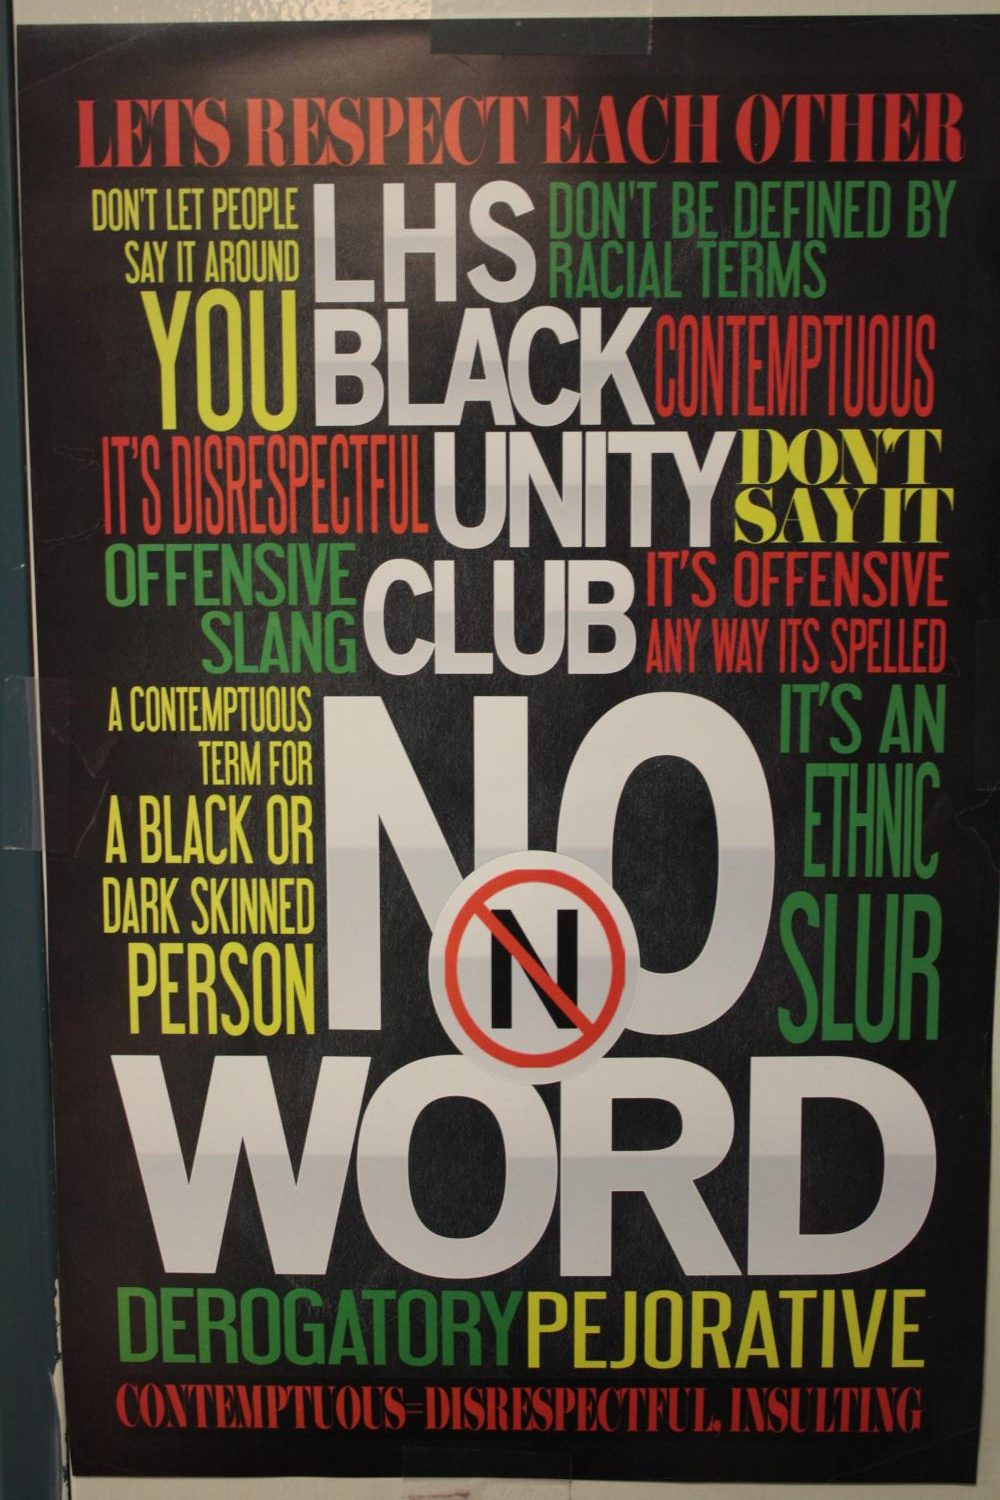 Anti N-Word posters in response to the post student election incident of 2016.